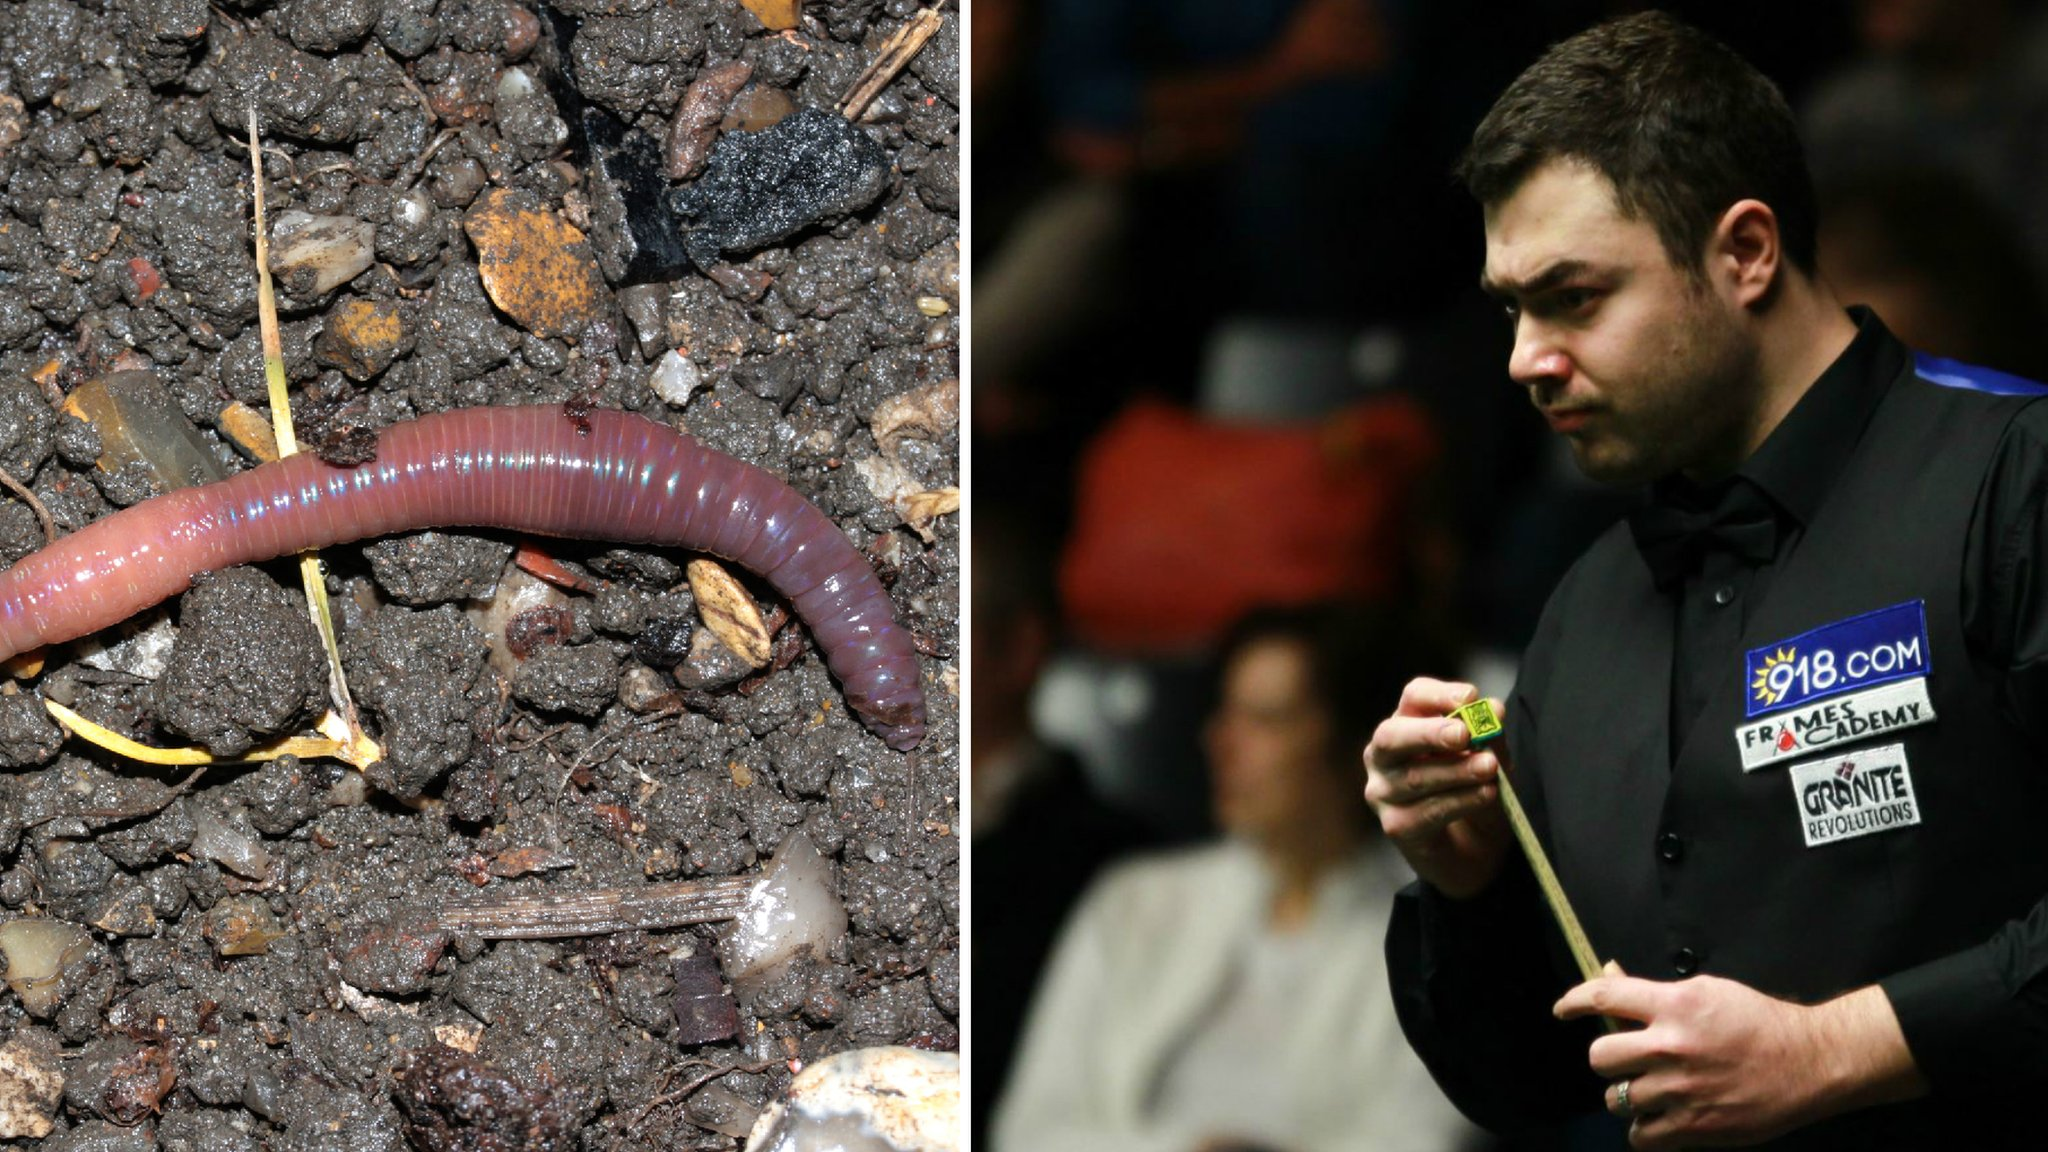 My thumb was huge - snooker player bitten by worm